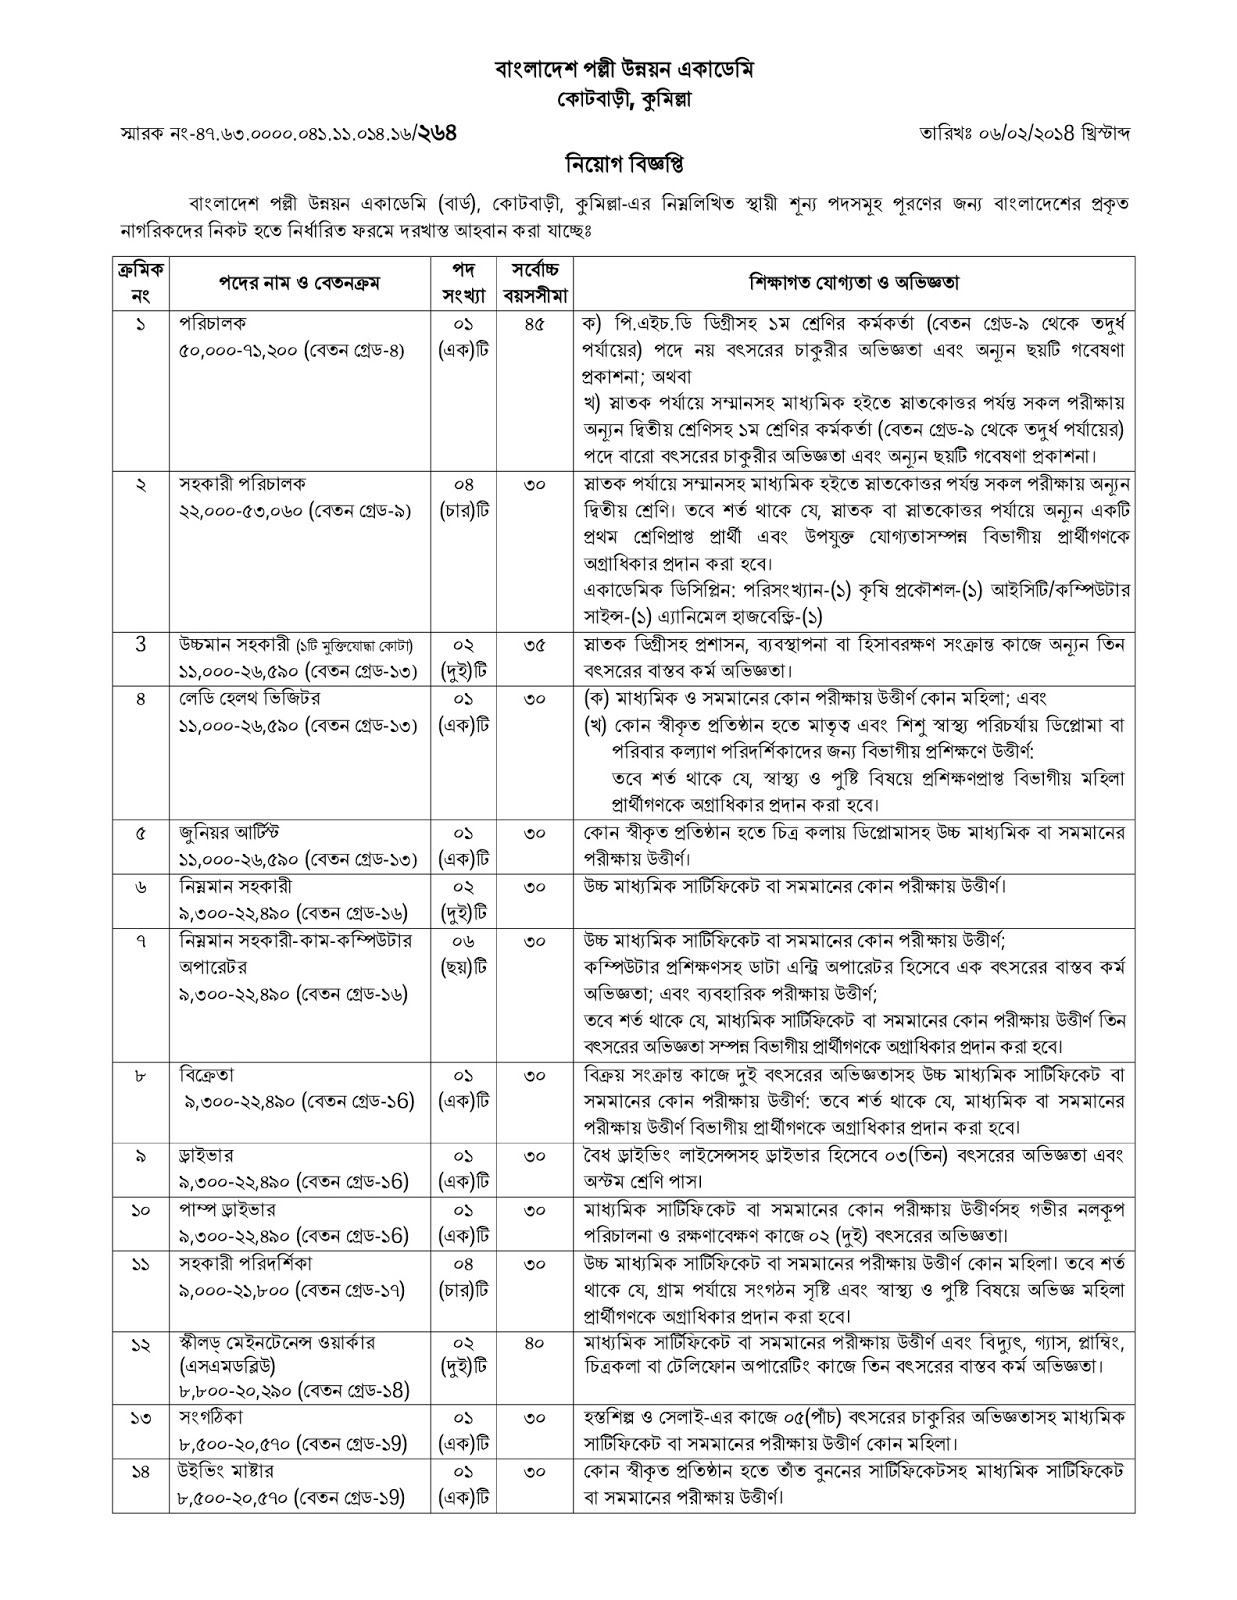 Bangladesh Academy for Rural Development (BARD), Comilla Recruitment Circular 2018